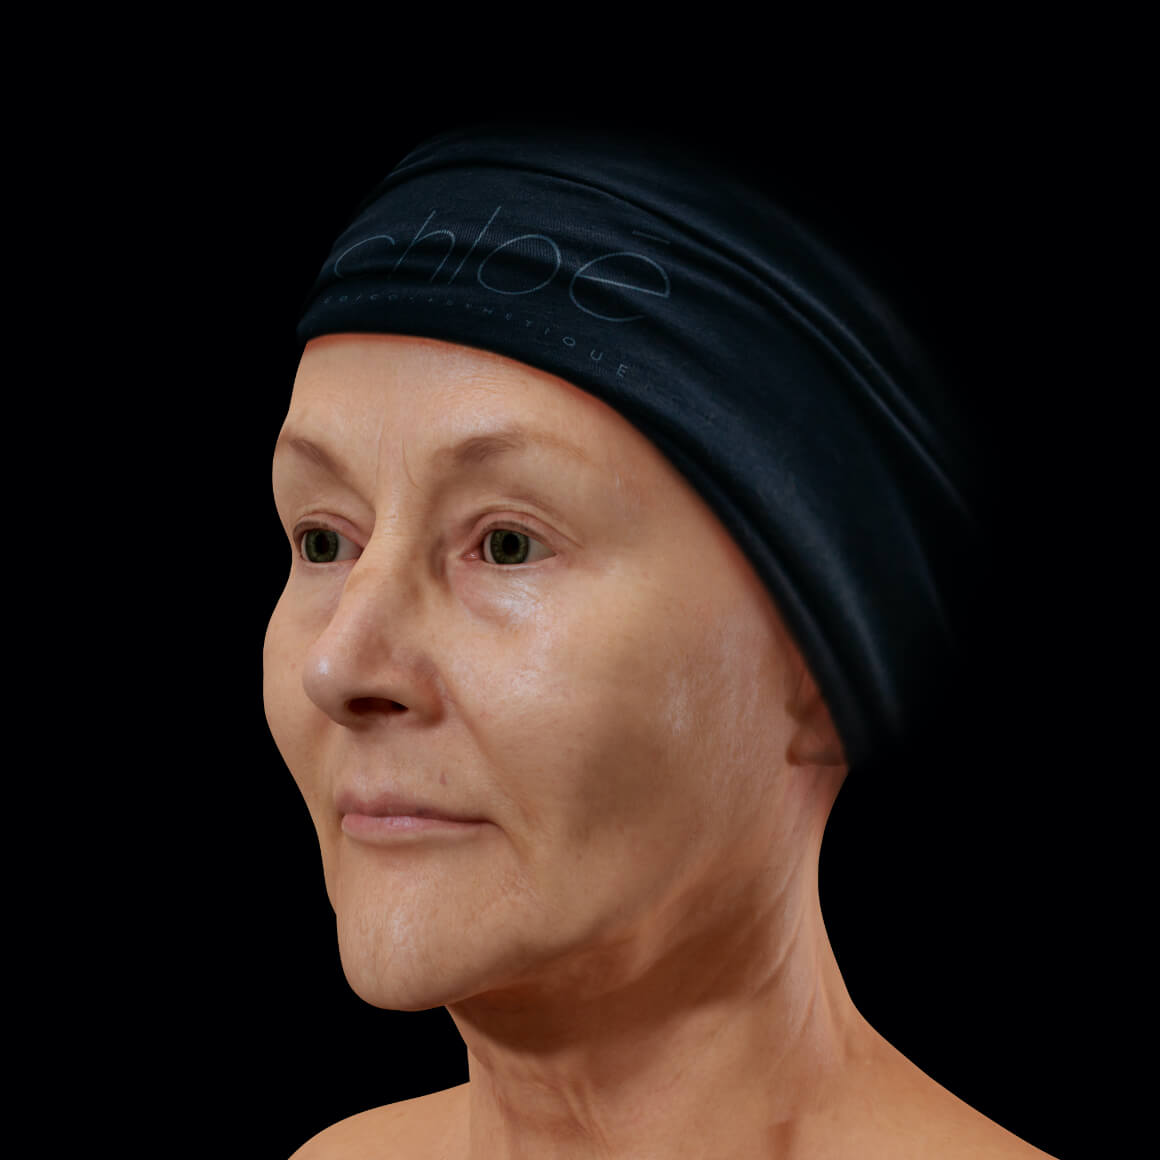 A Clinique Chloé female patient at an angle after IPL photorejuvenation treatments for pigmented lesions, or dark spots